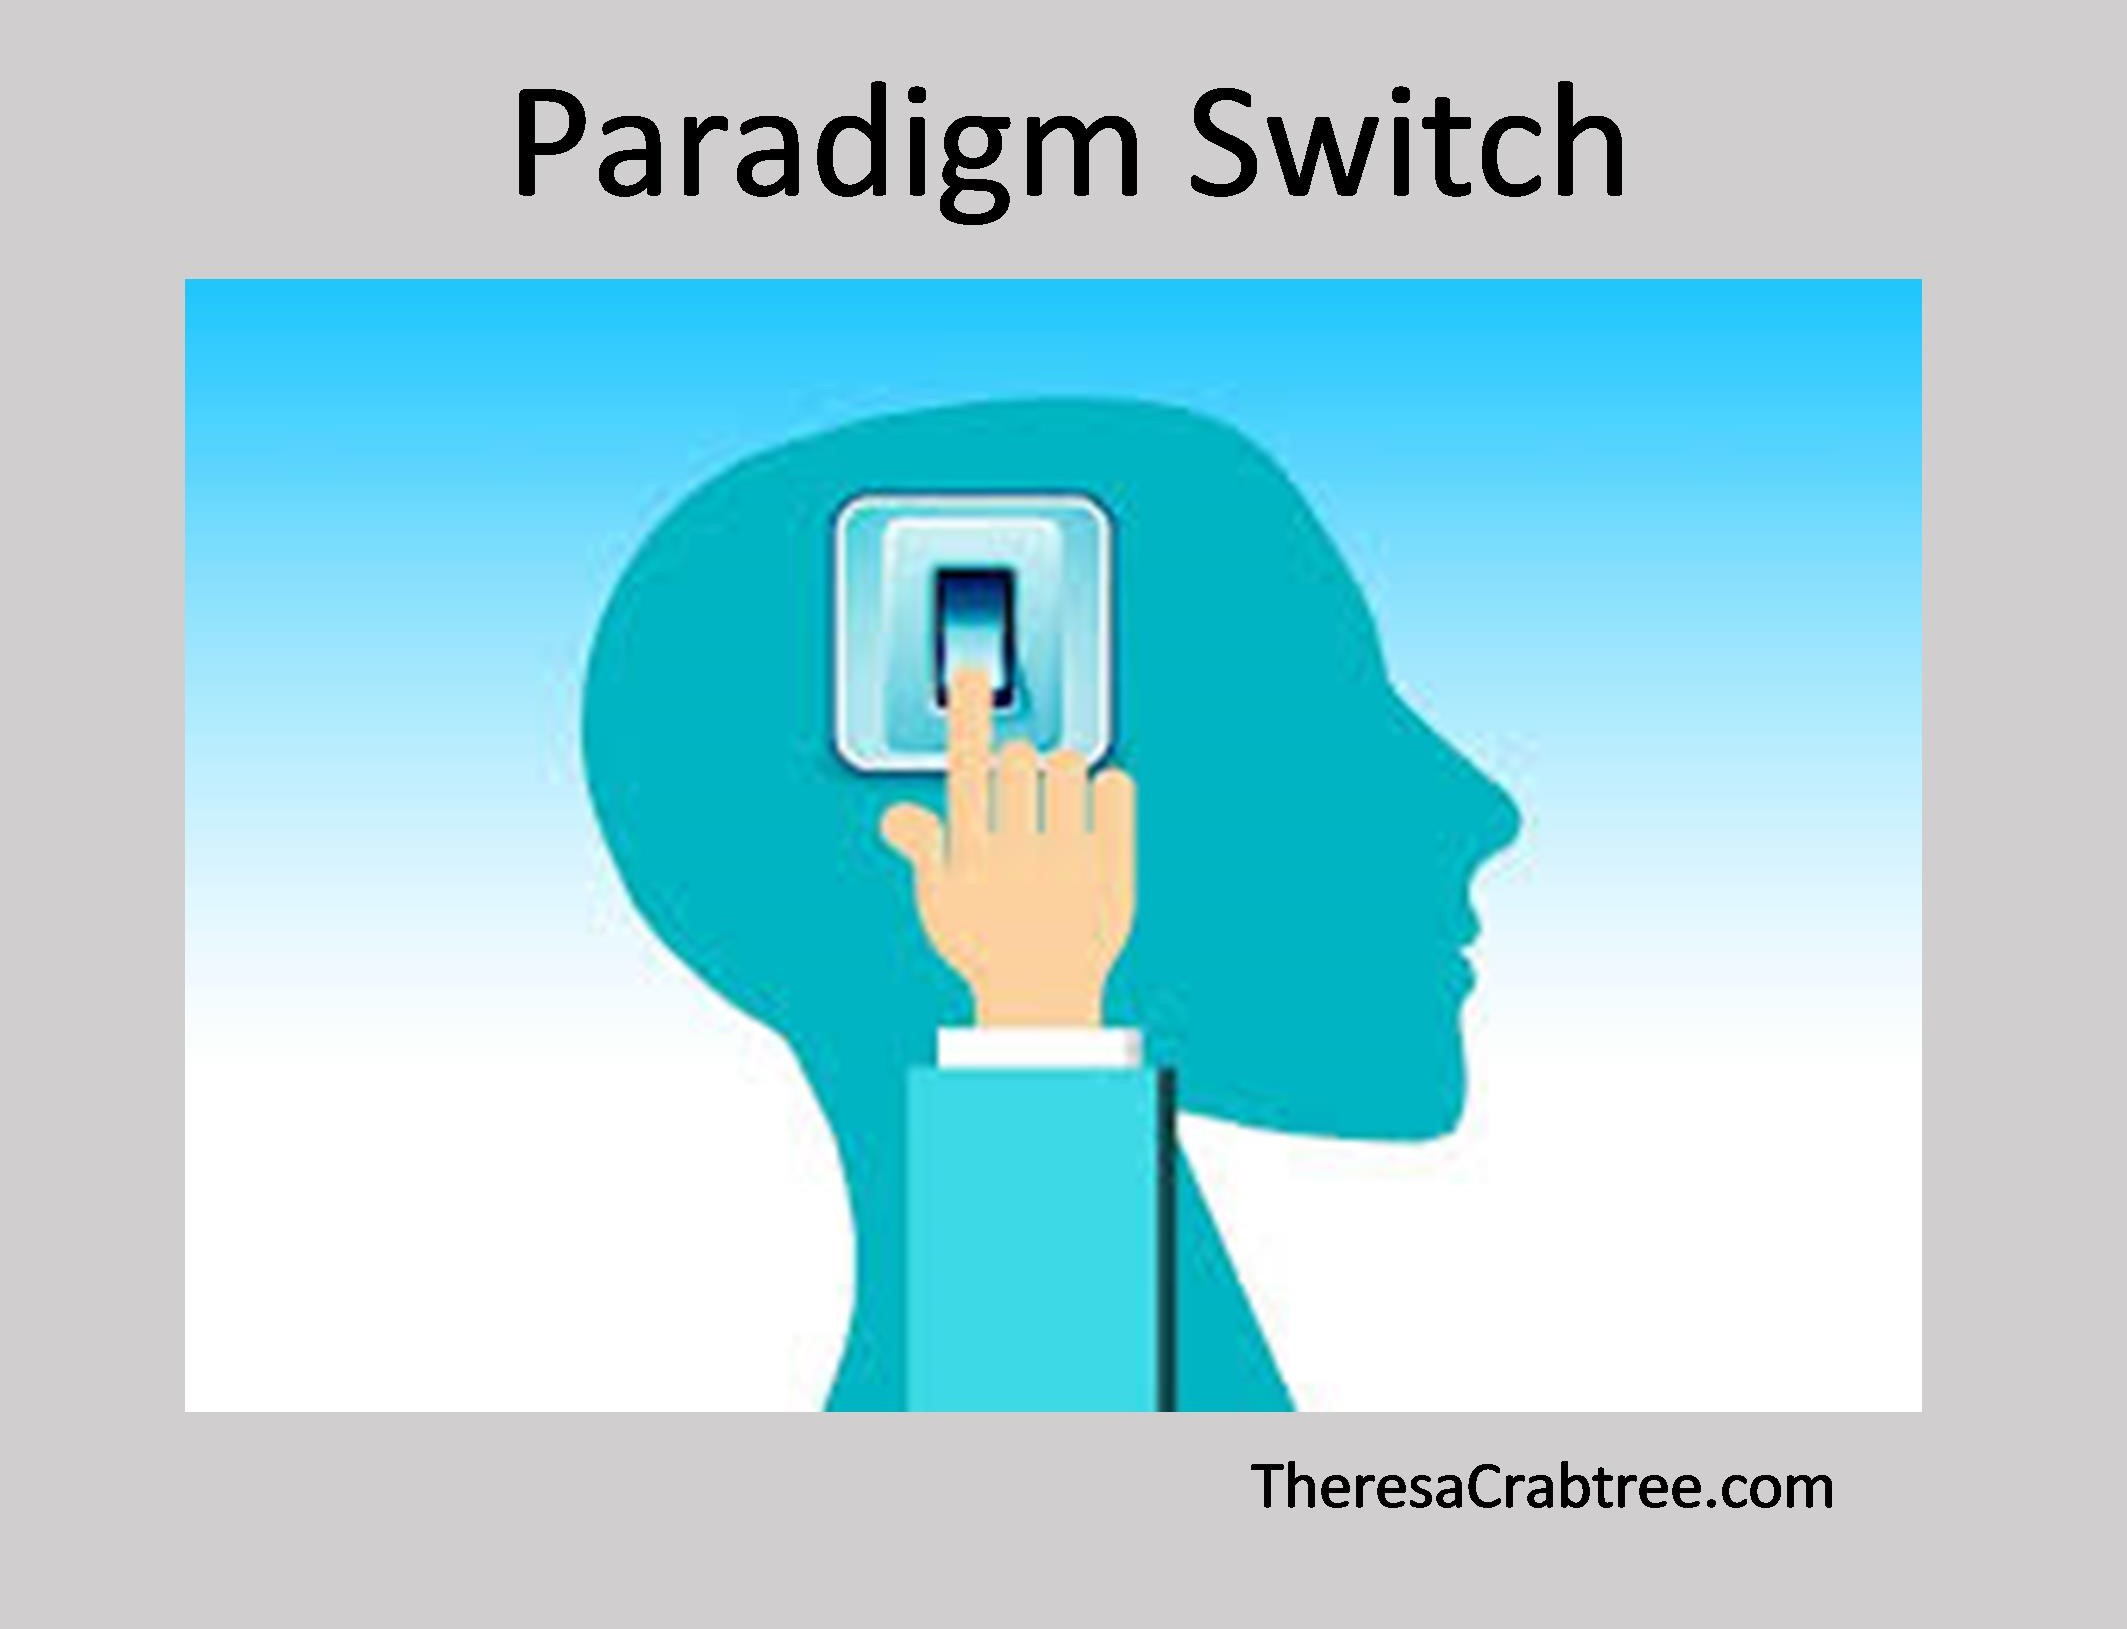 Paradigm Switch